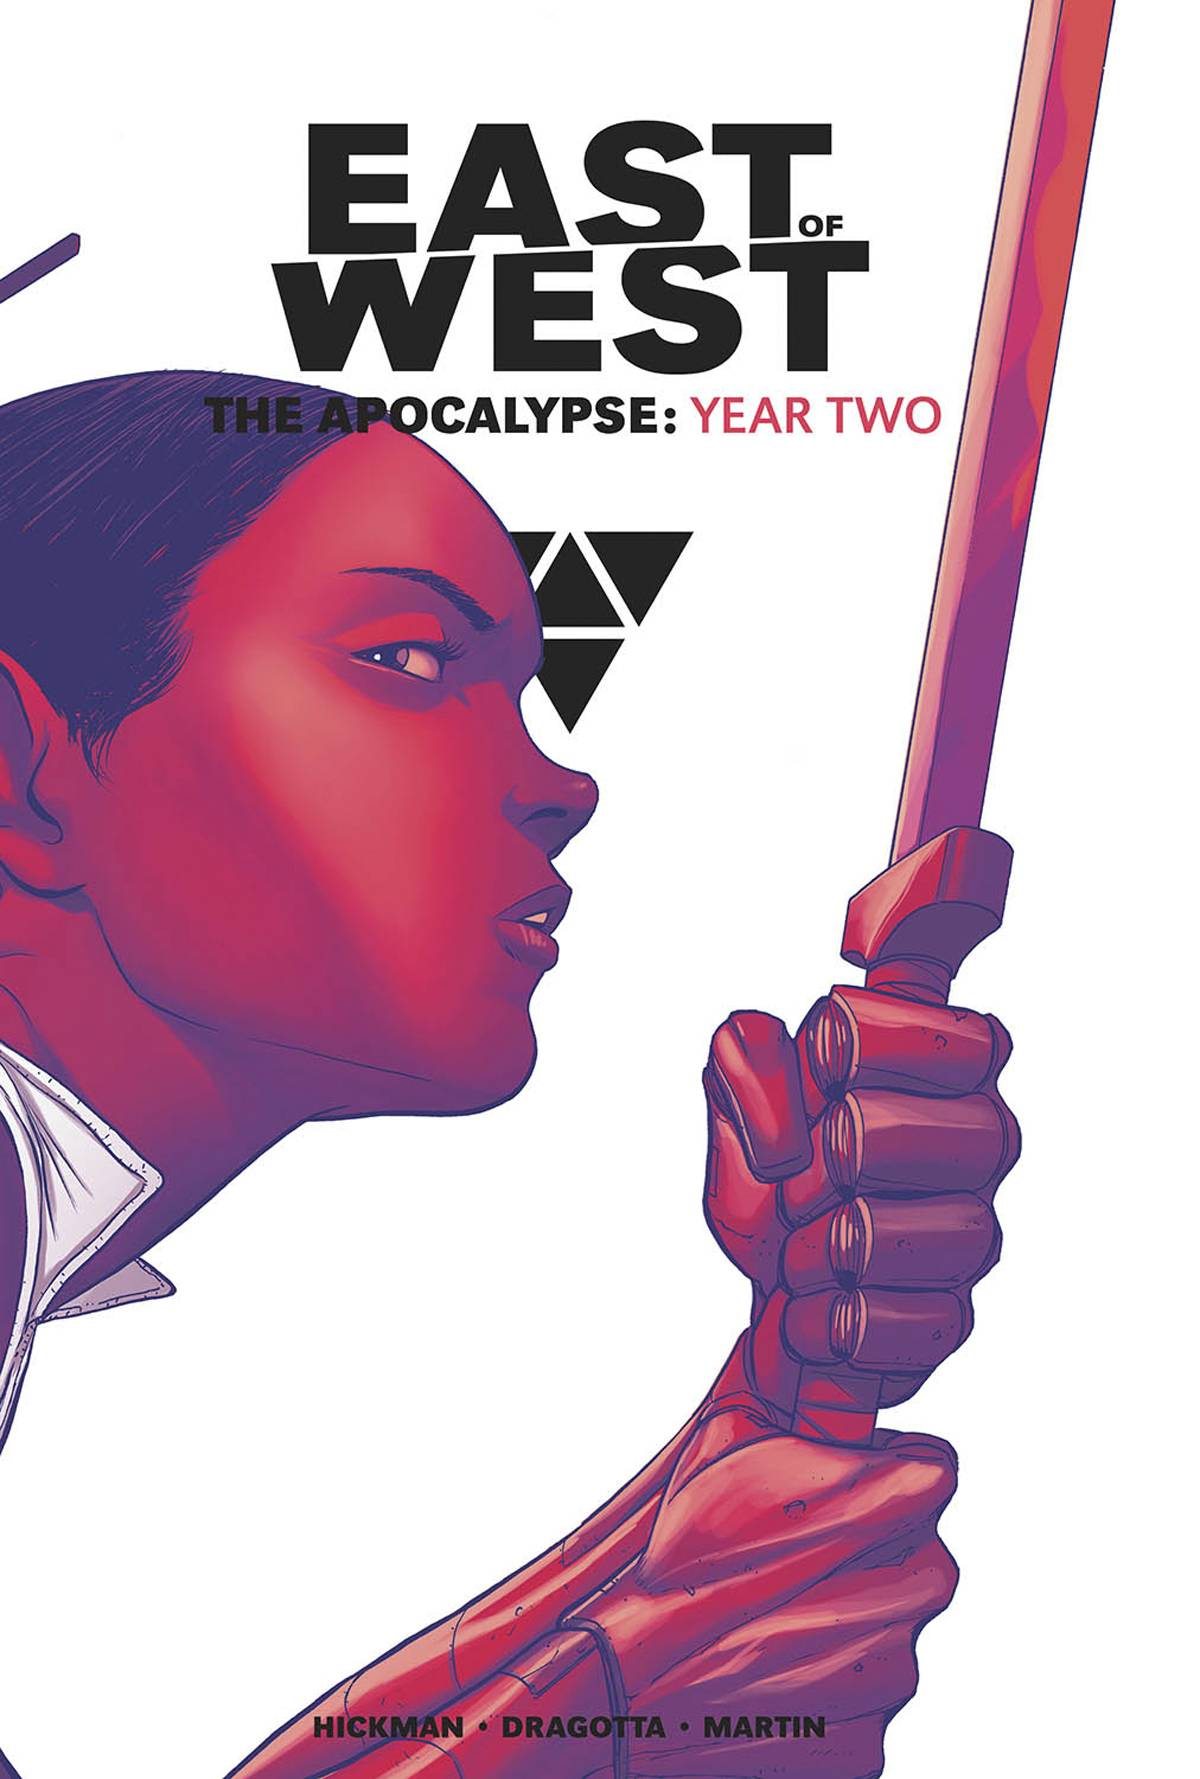 EAST OF WEST THE APOCALYPSE YEAR TWO HC (O/A)